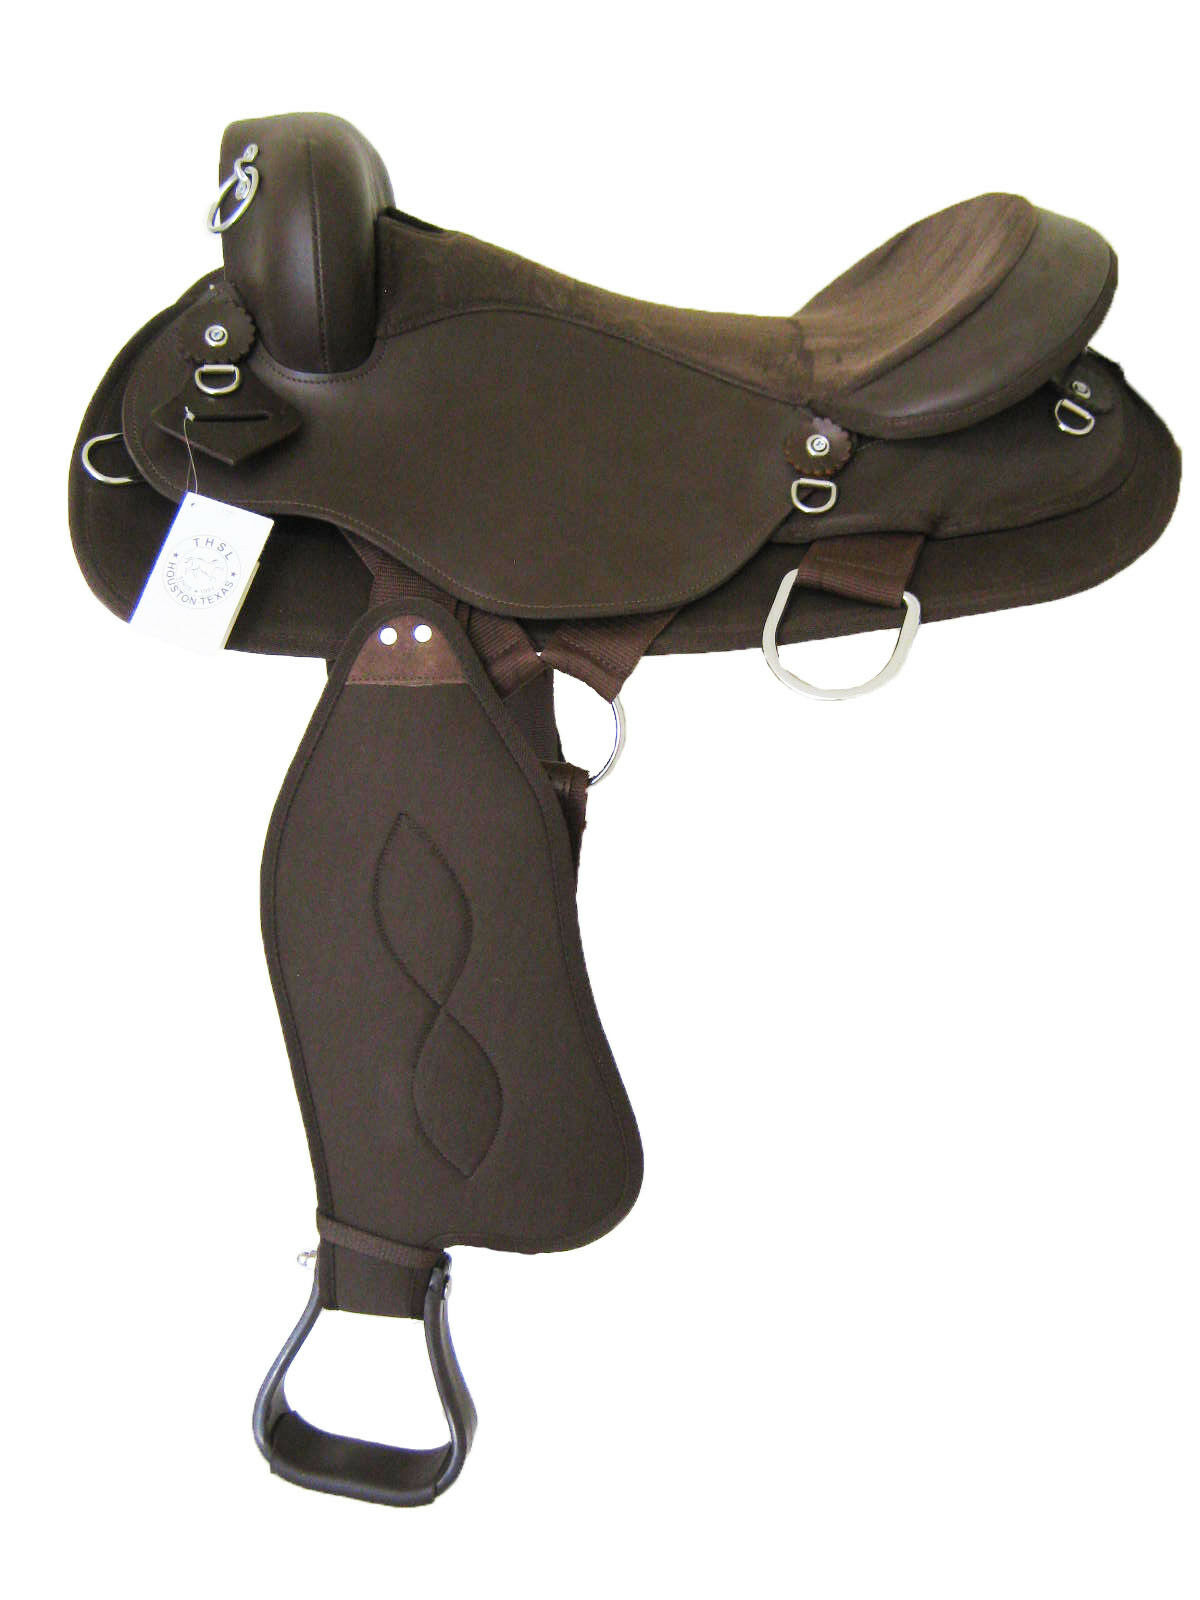 WESTERN SYNTHETIC ENDURANCE SADDLE PKG (WITHOUT HORN) BROWN  15   (WS_1031)  wholesale price